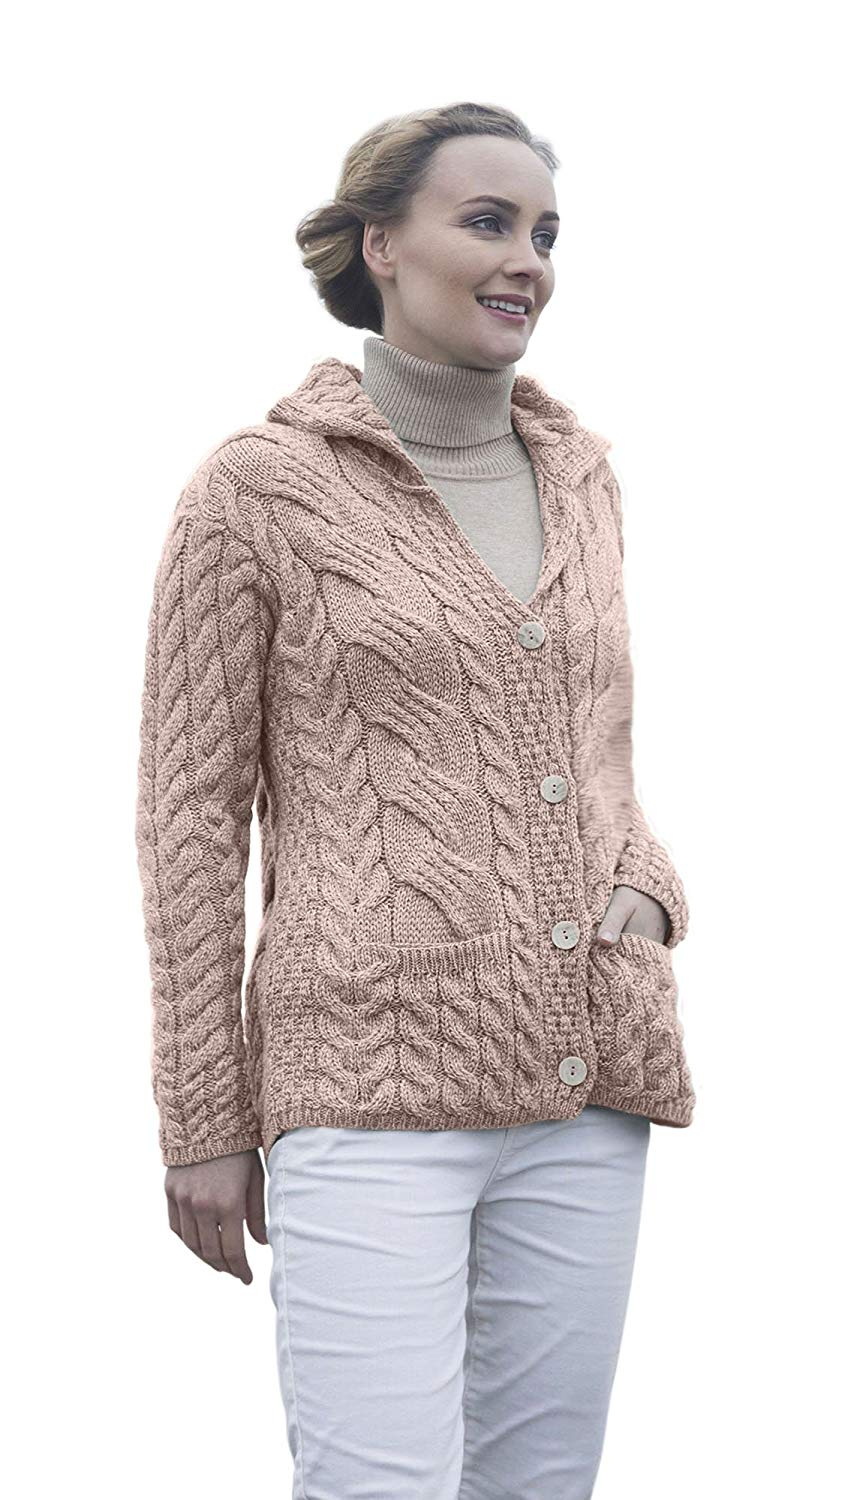 8ad5efc481ebba Get Quotations · Ladies Irish Buttoned Cable Knit Super Soft Merino Wool  Cardigan